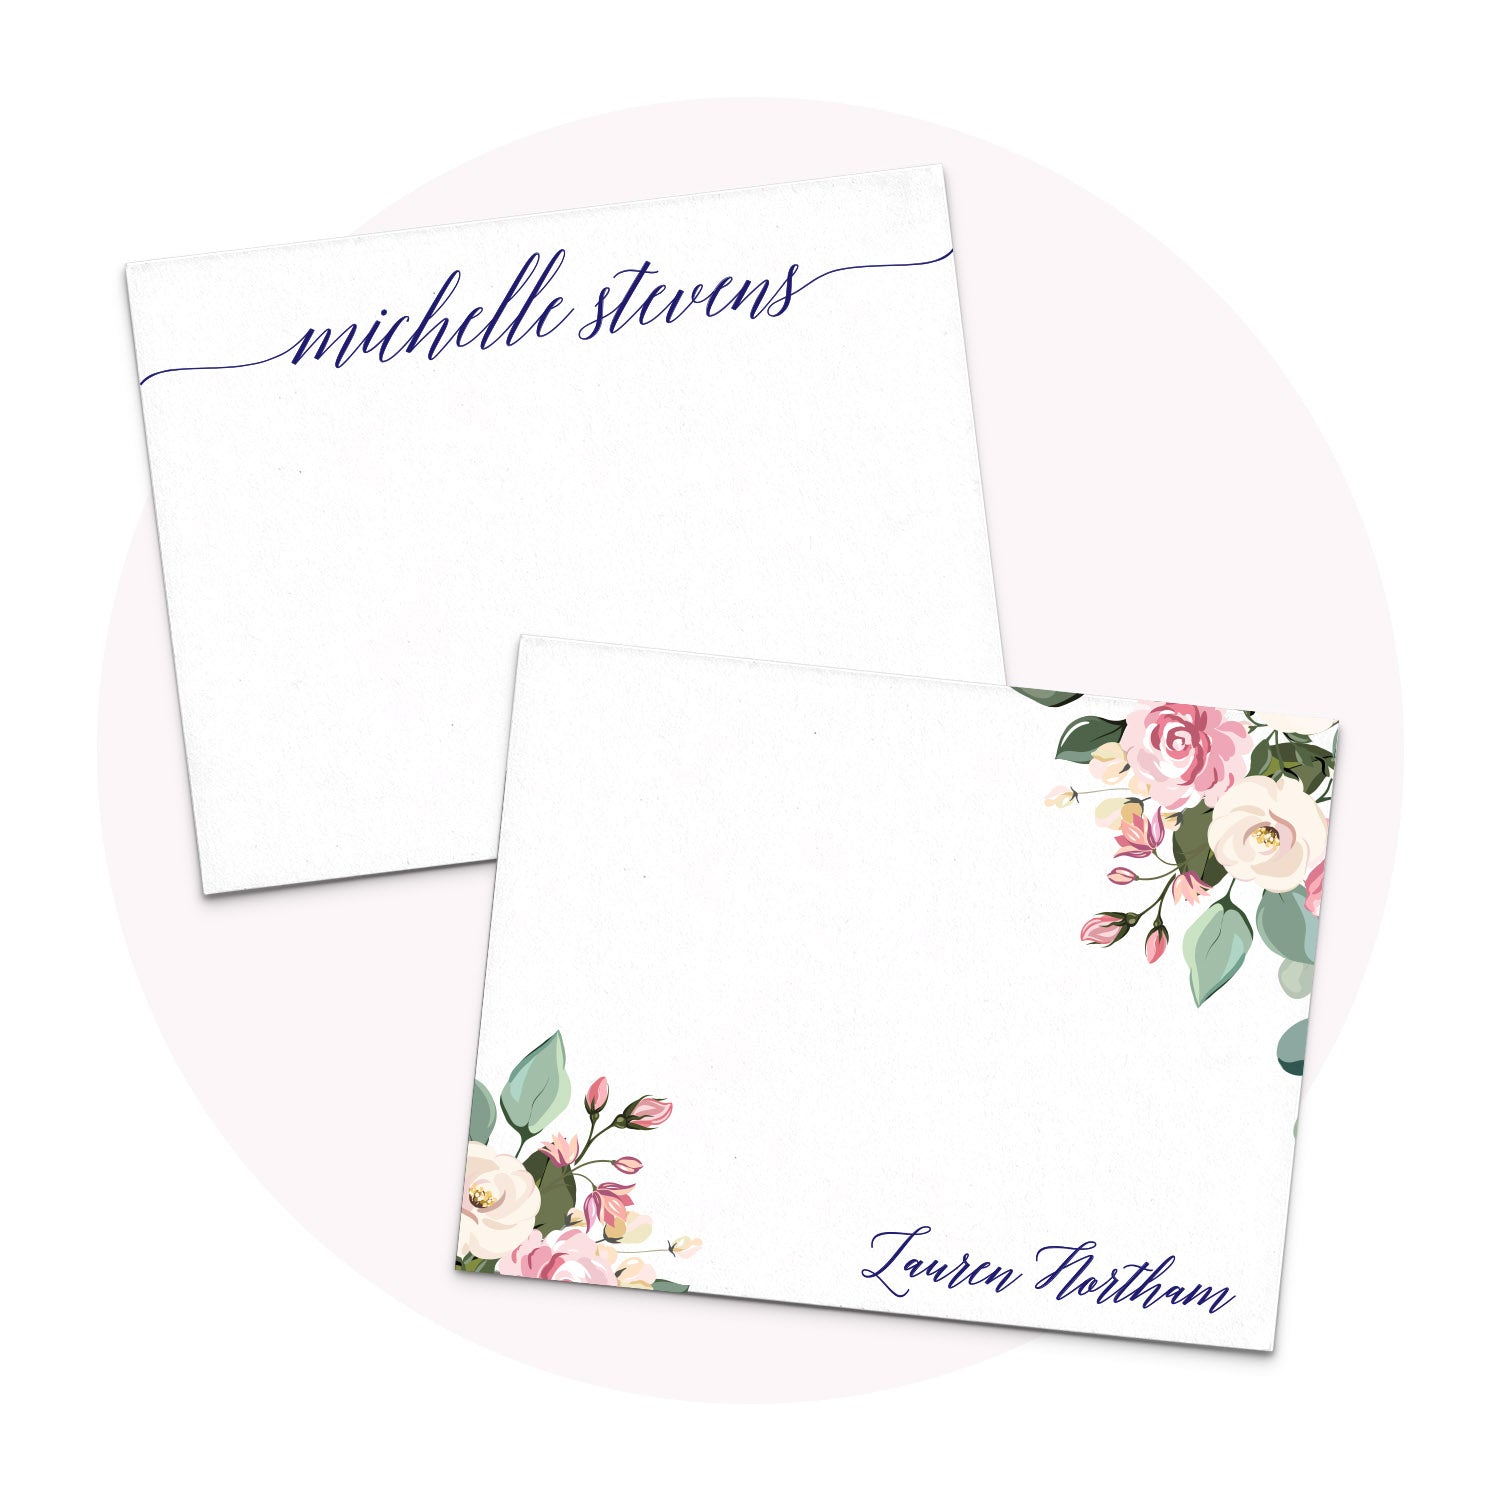 Personalized Stationery note cards for women